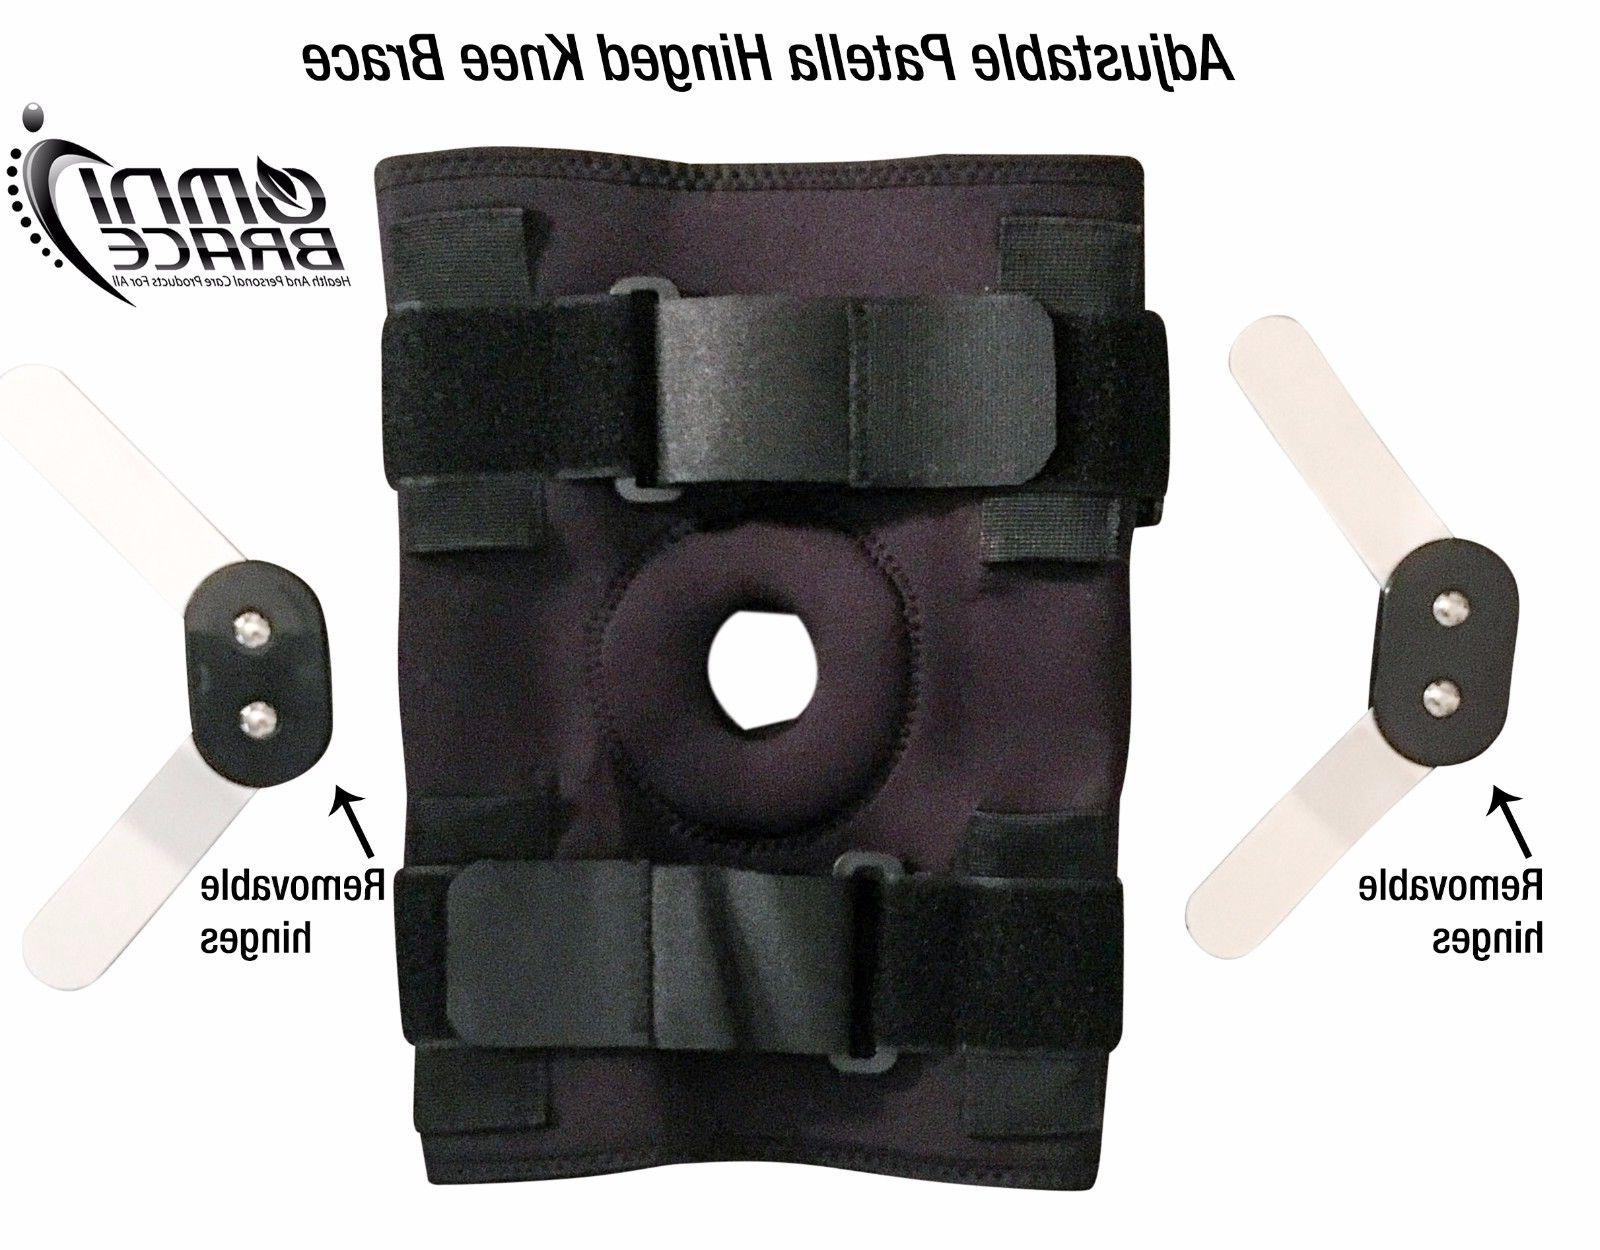 OmniBrace-Adjustable Wraparound Knee Support Brace M to 4XL